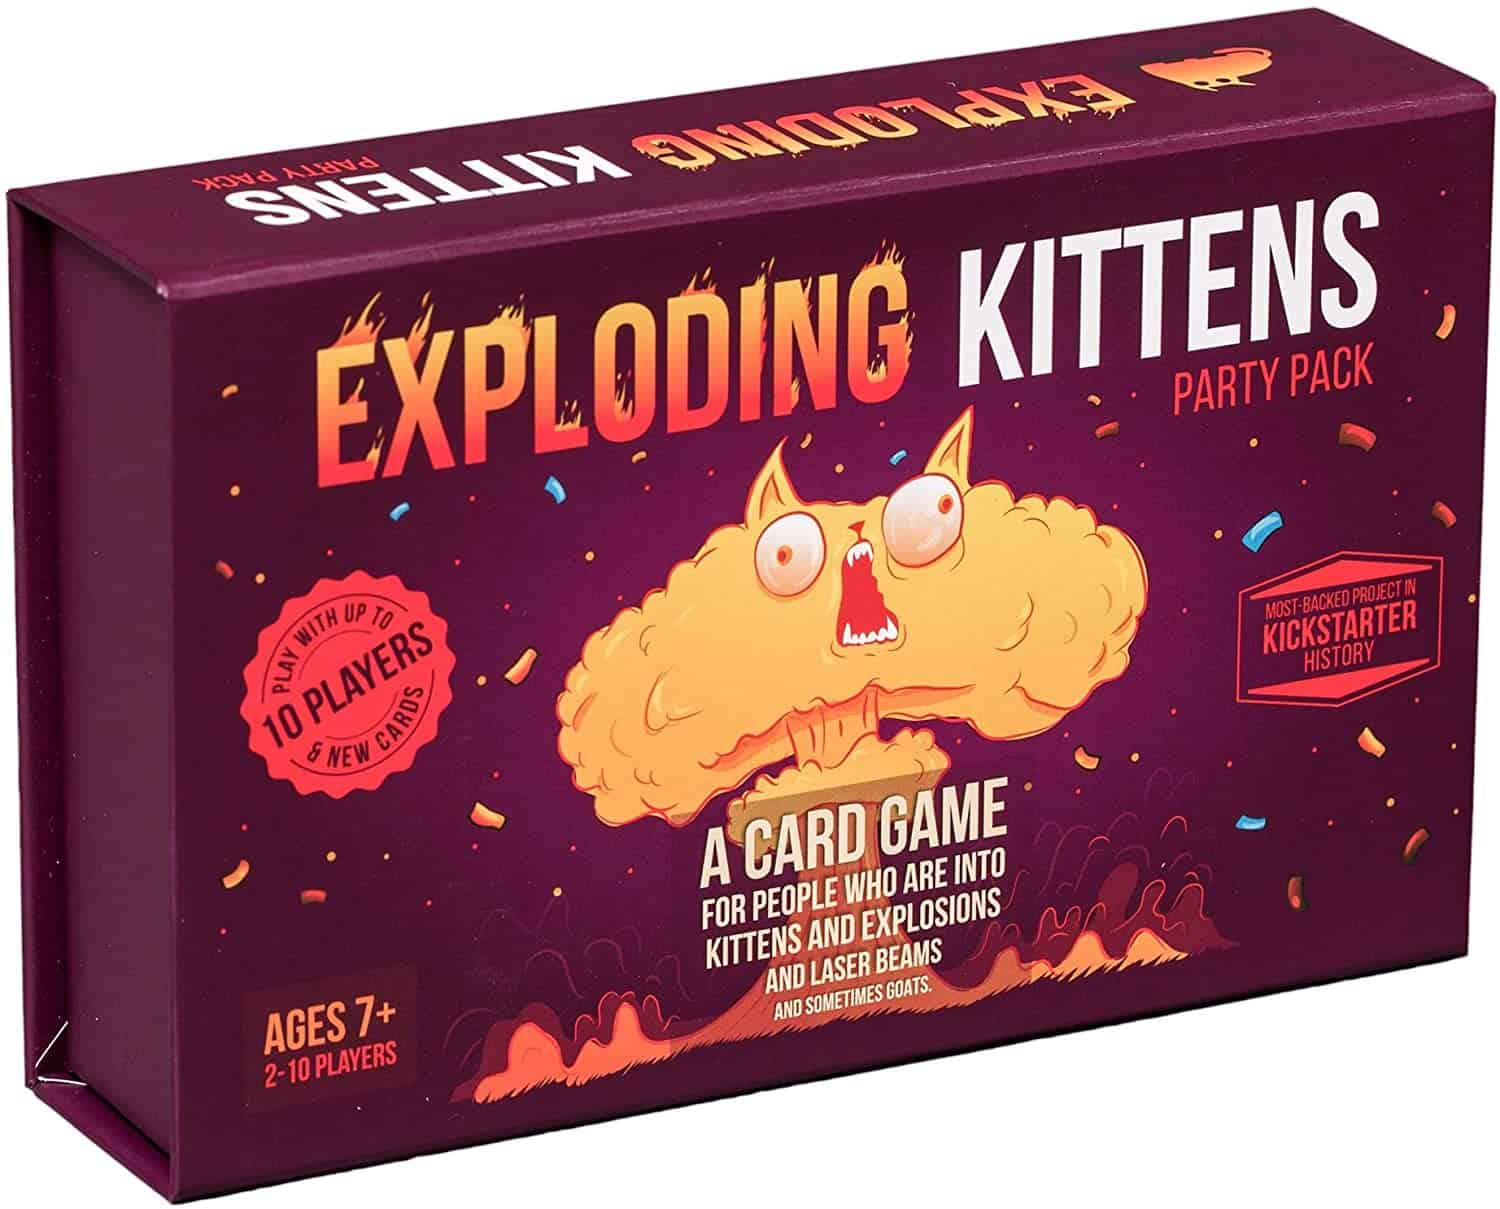 Exploding Kittens Card Game - Party Pack for Up to 10 Players - Family-Friendly